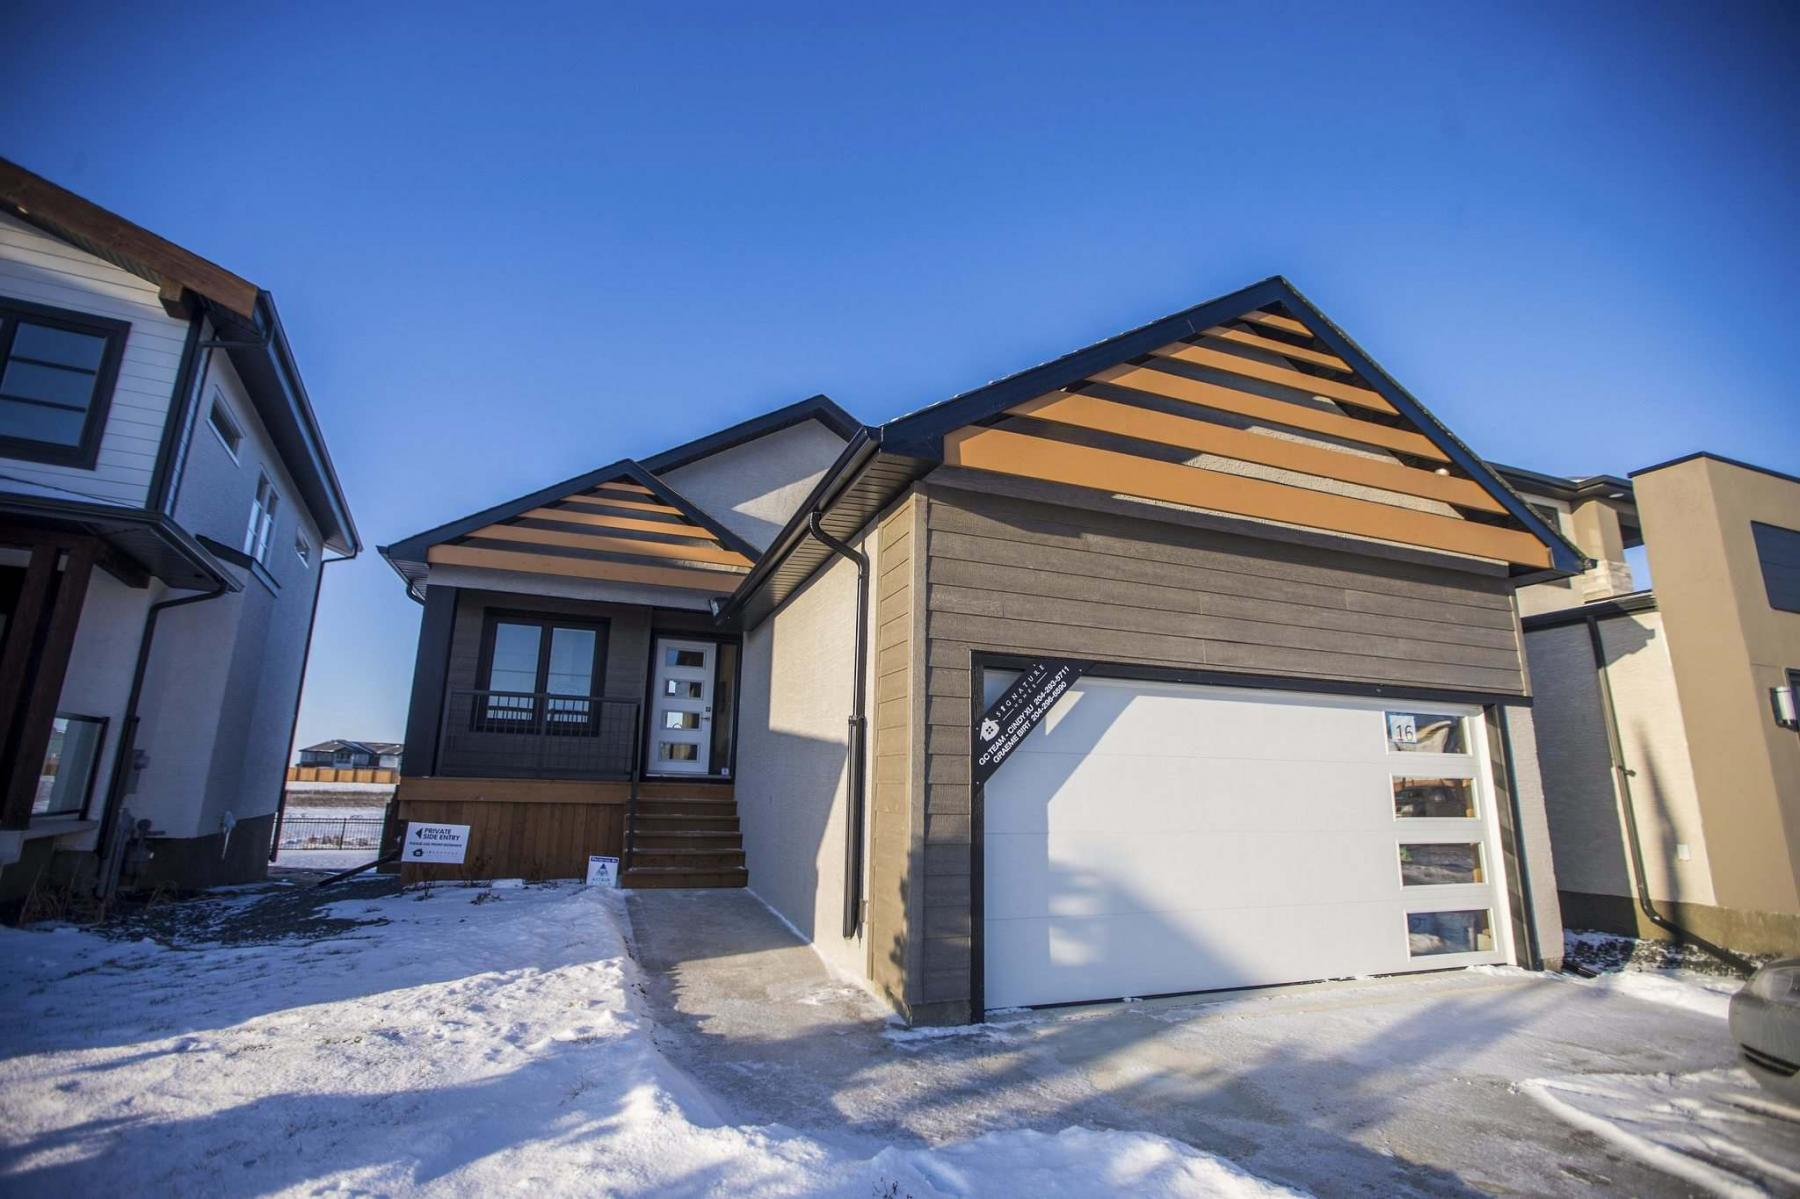 <p>MIKAELA MACKENZIE / WINNIPEG FREE PRESS</p><p>The 1,255-sq.-ft. raised bungalow at 16 Berry Hill Rd. in Prairie Pointe has an unassuming exterior, but it's anything but ordinary inside.</p></p>